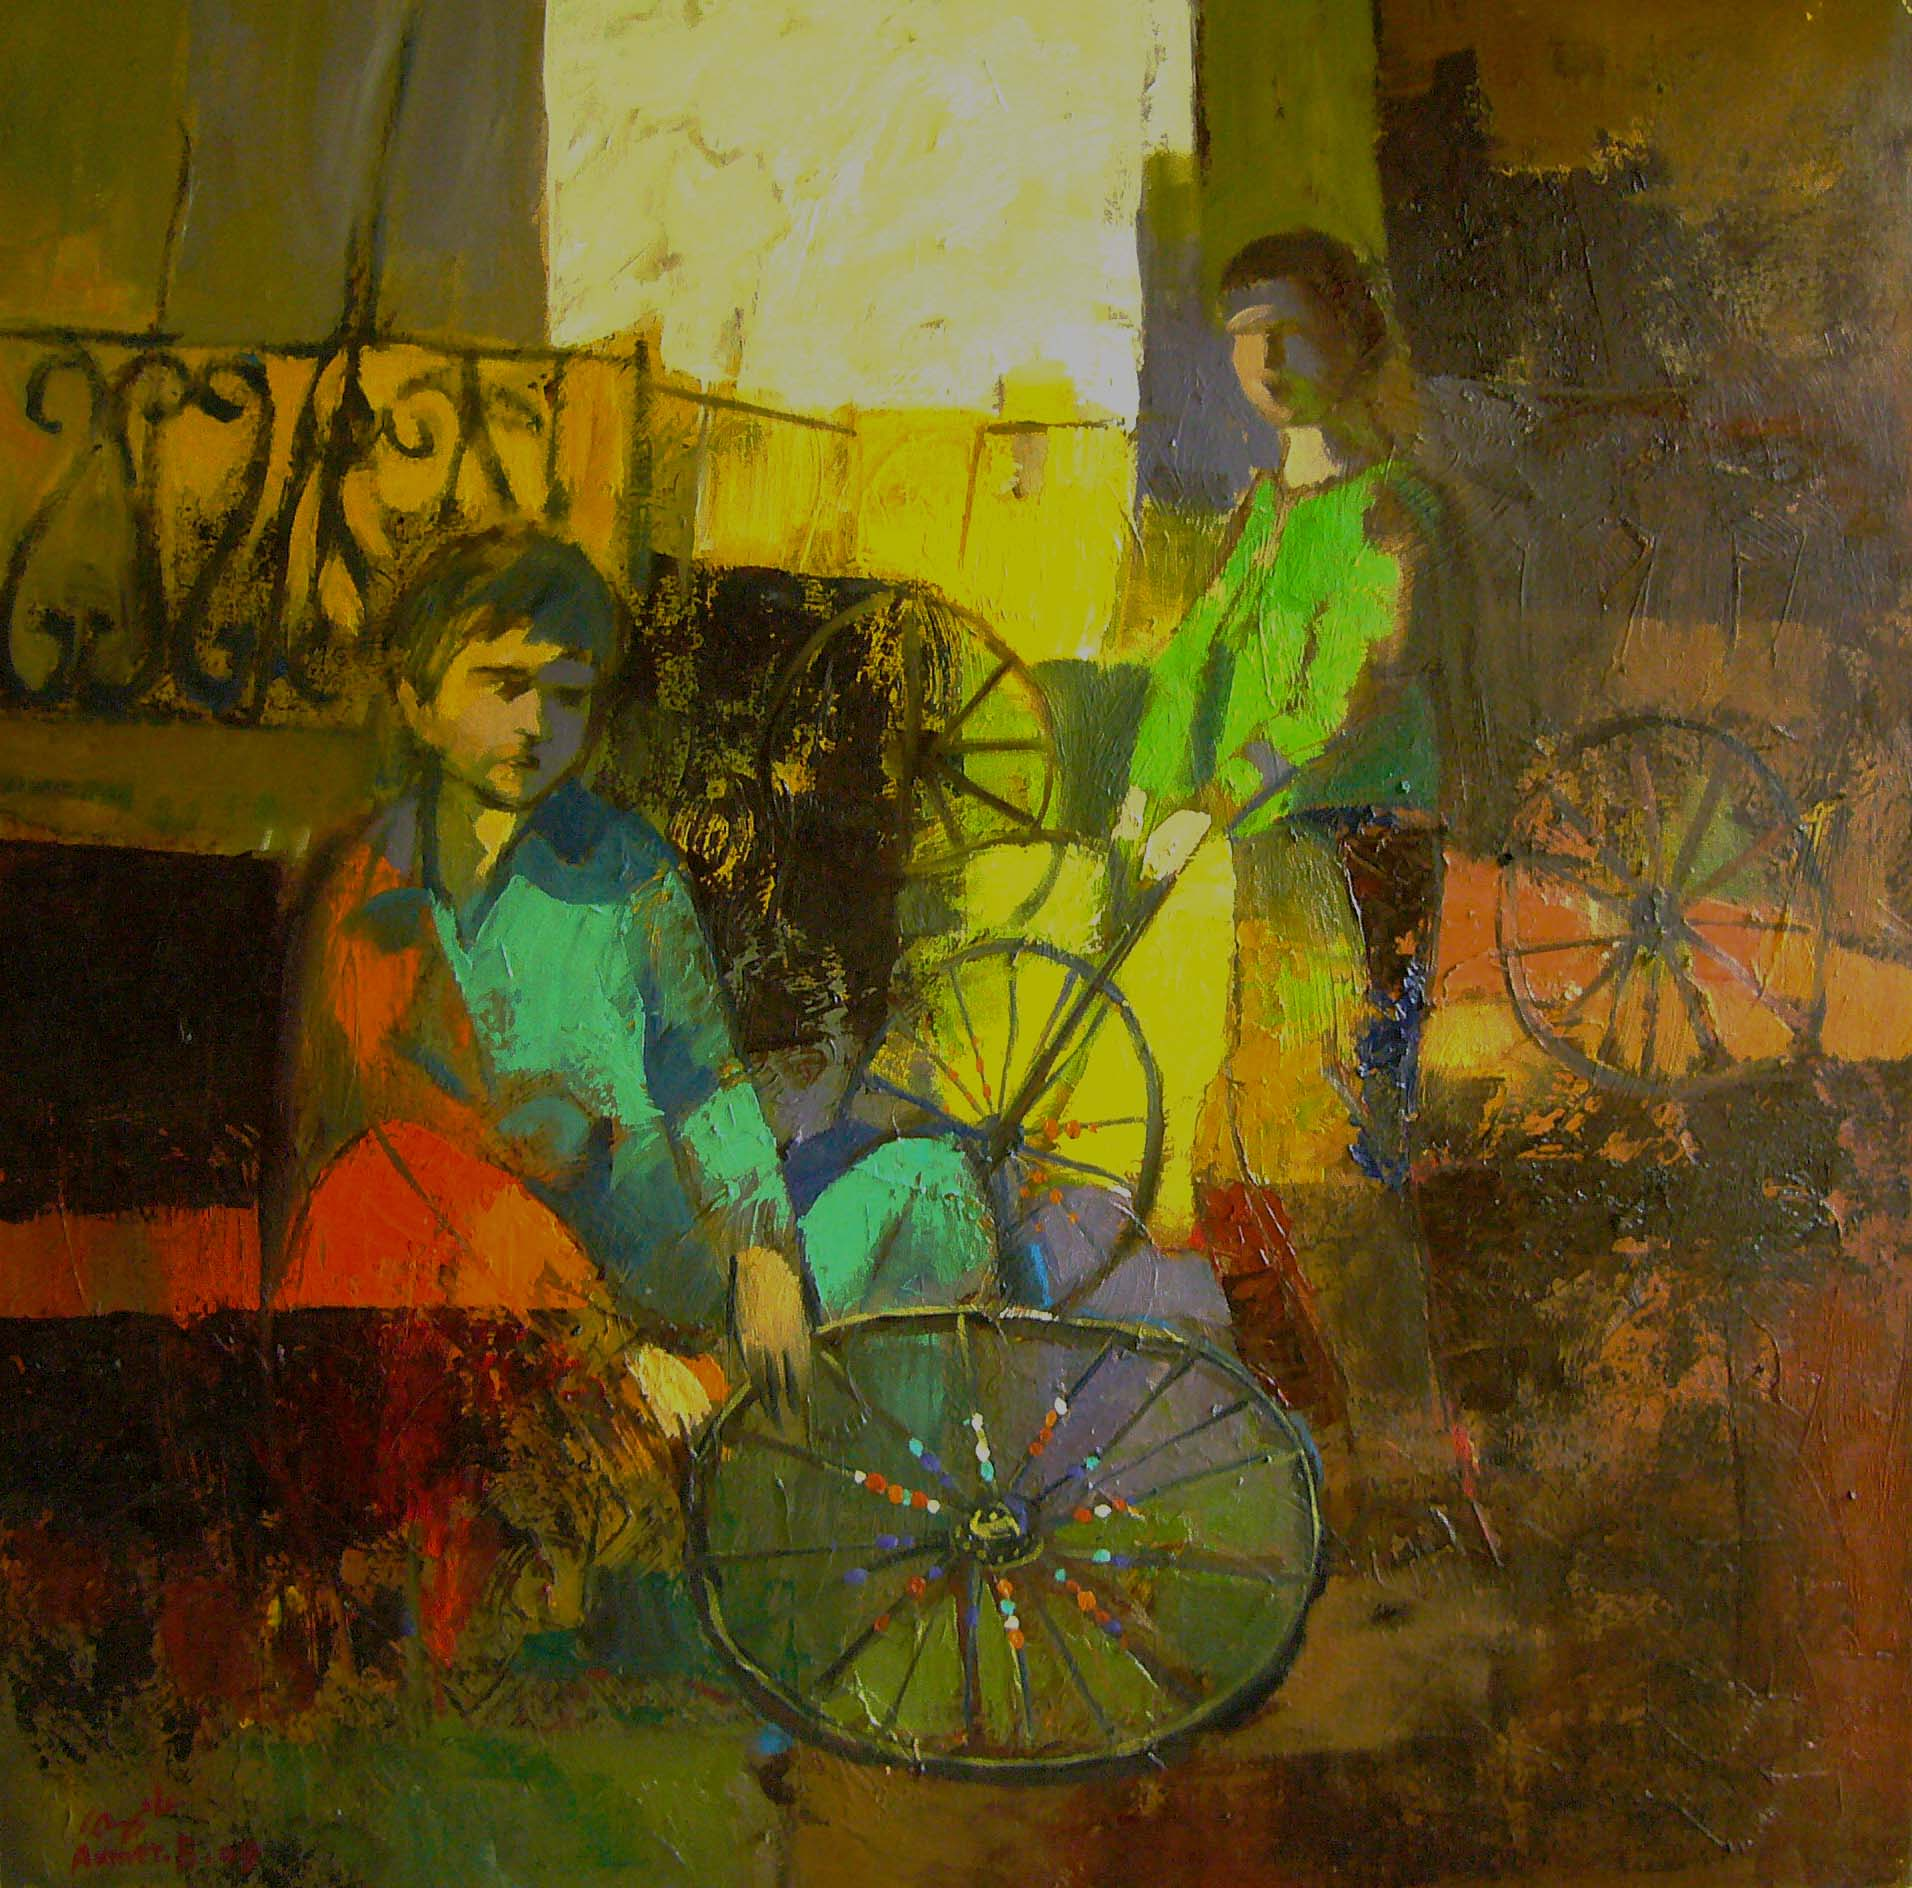 47 - 80x80 cm, Oil on canvas, 2009